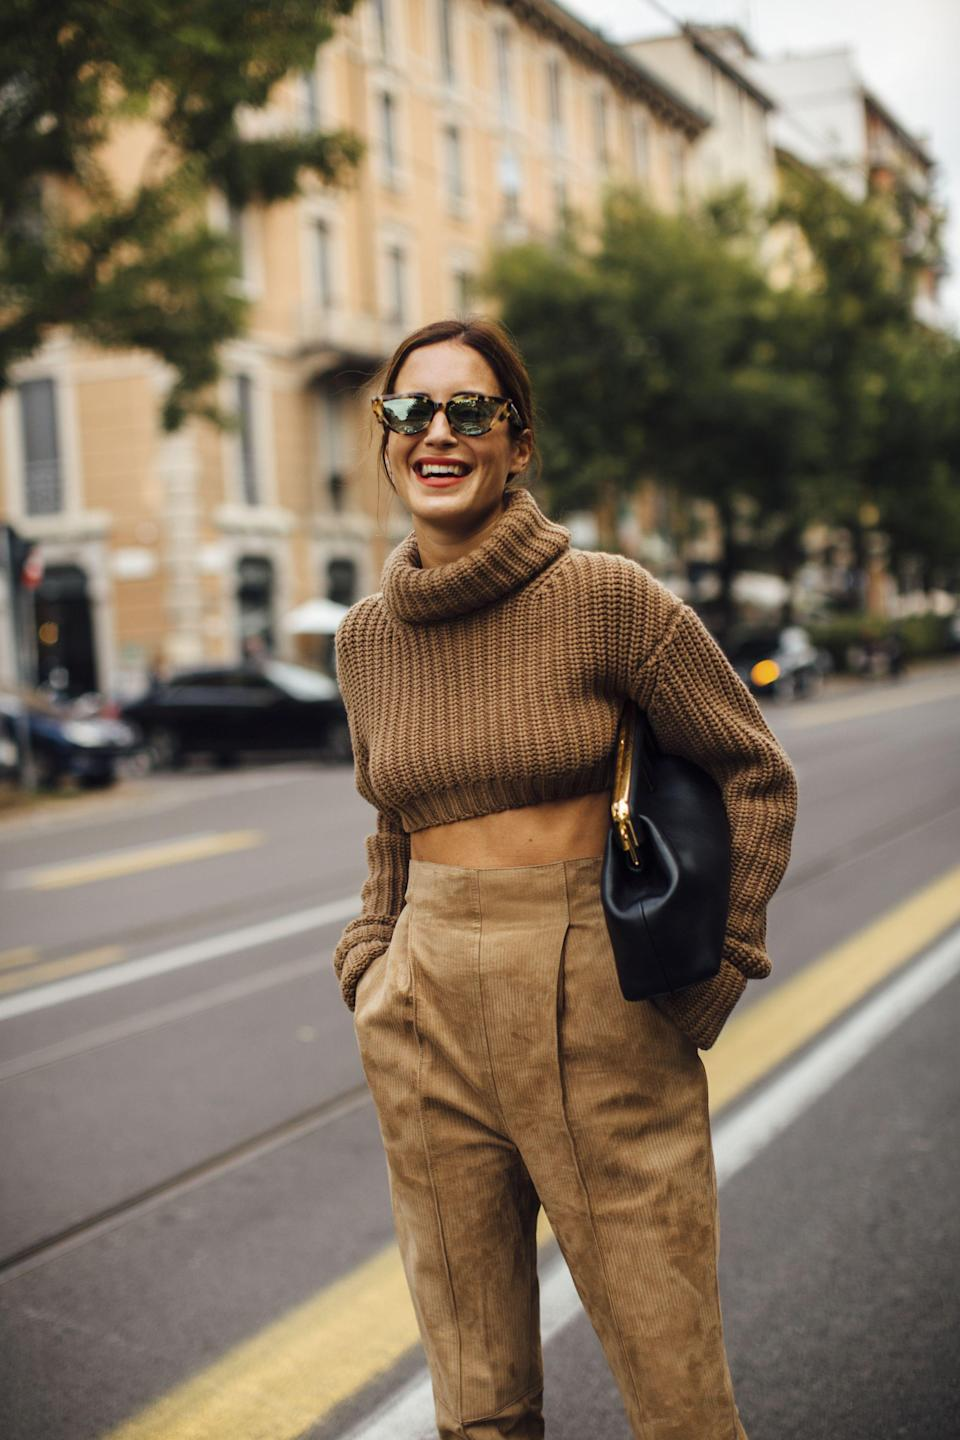 <p>From dad trainers to tiny handbags, puffer jackets through to cowboy boots and mini-skirts, Milan Fashion Week is sure to deliver when it comes to inspiration for next season's show-stopping wardrobe choices from the fashion elite.</p><p>We take a look at the street styles taking our SS22 pieces to the next level.</p>